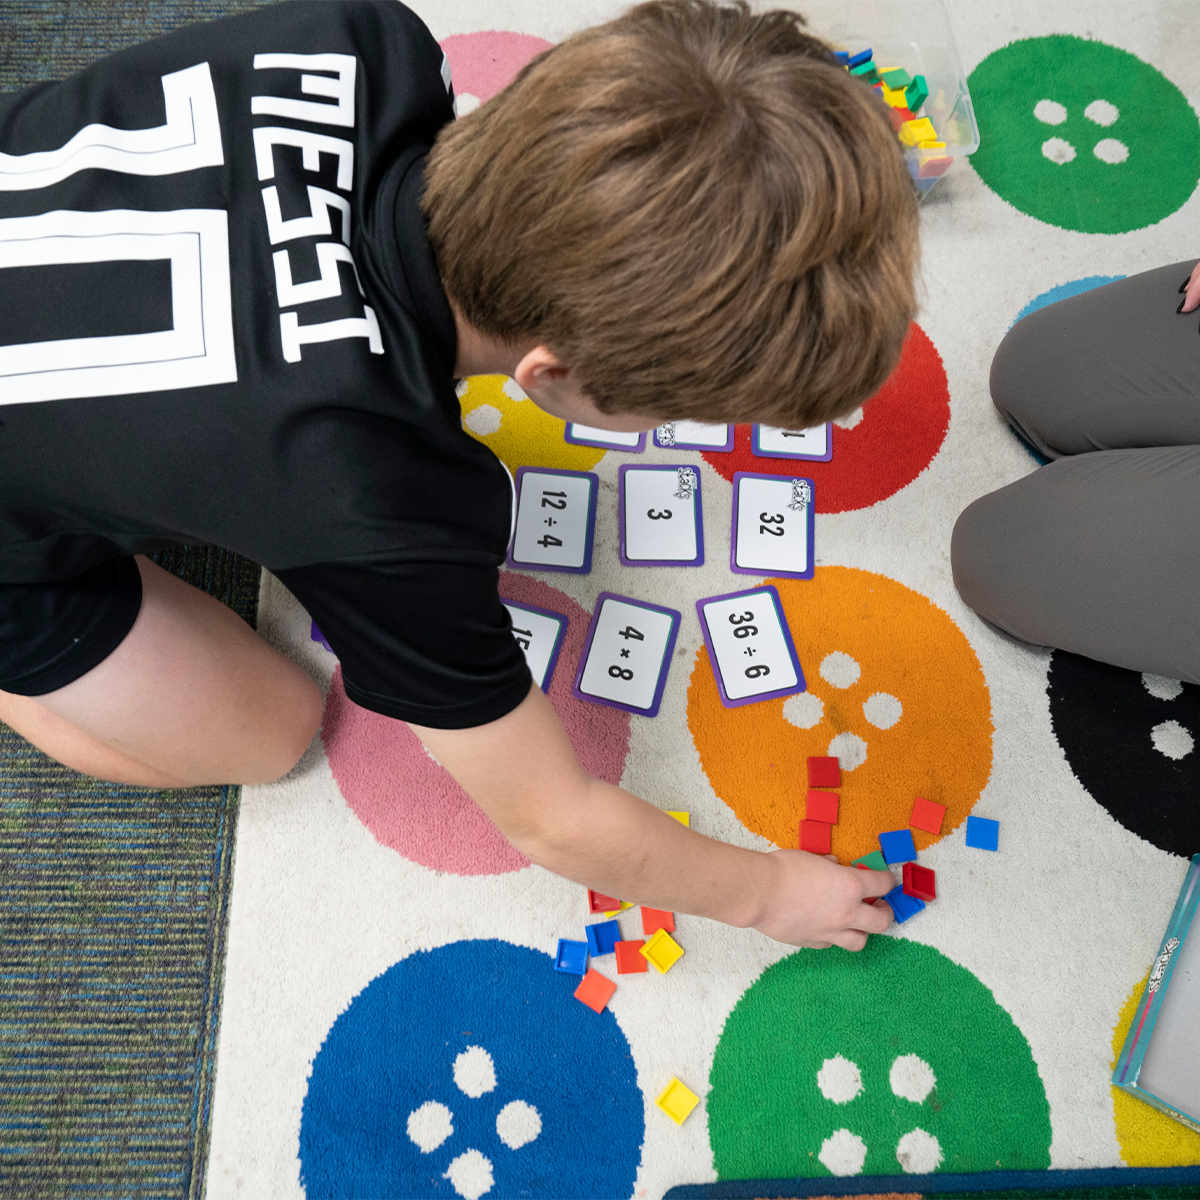 A student on the floor using math flashcards